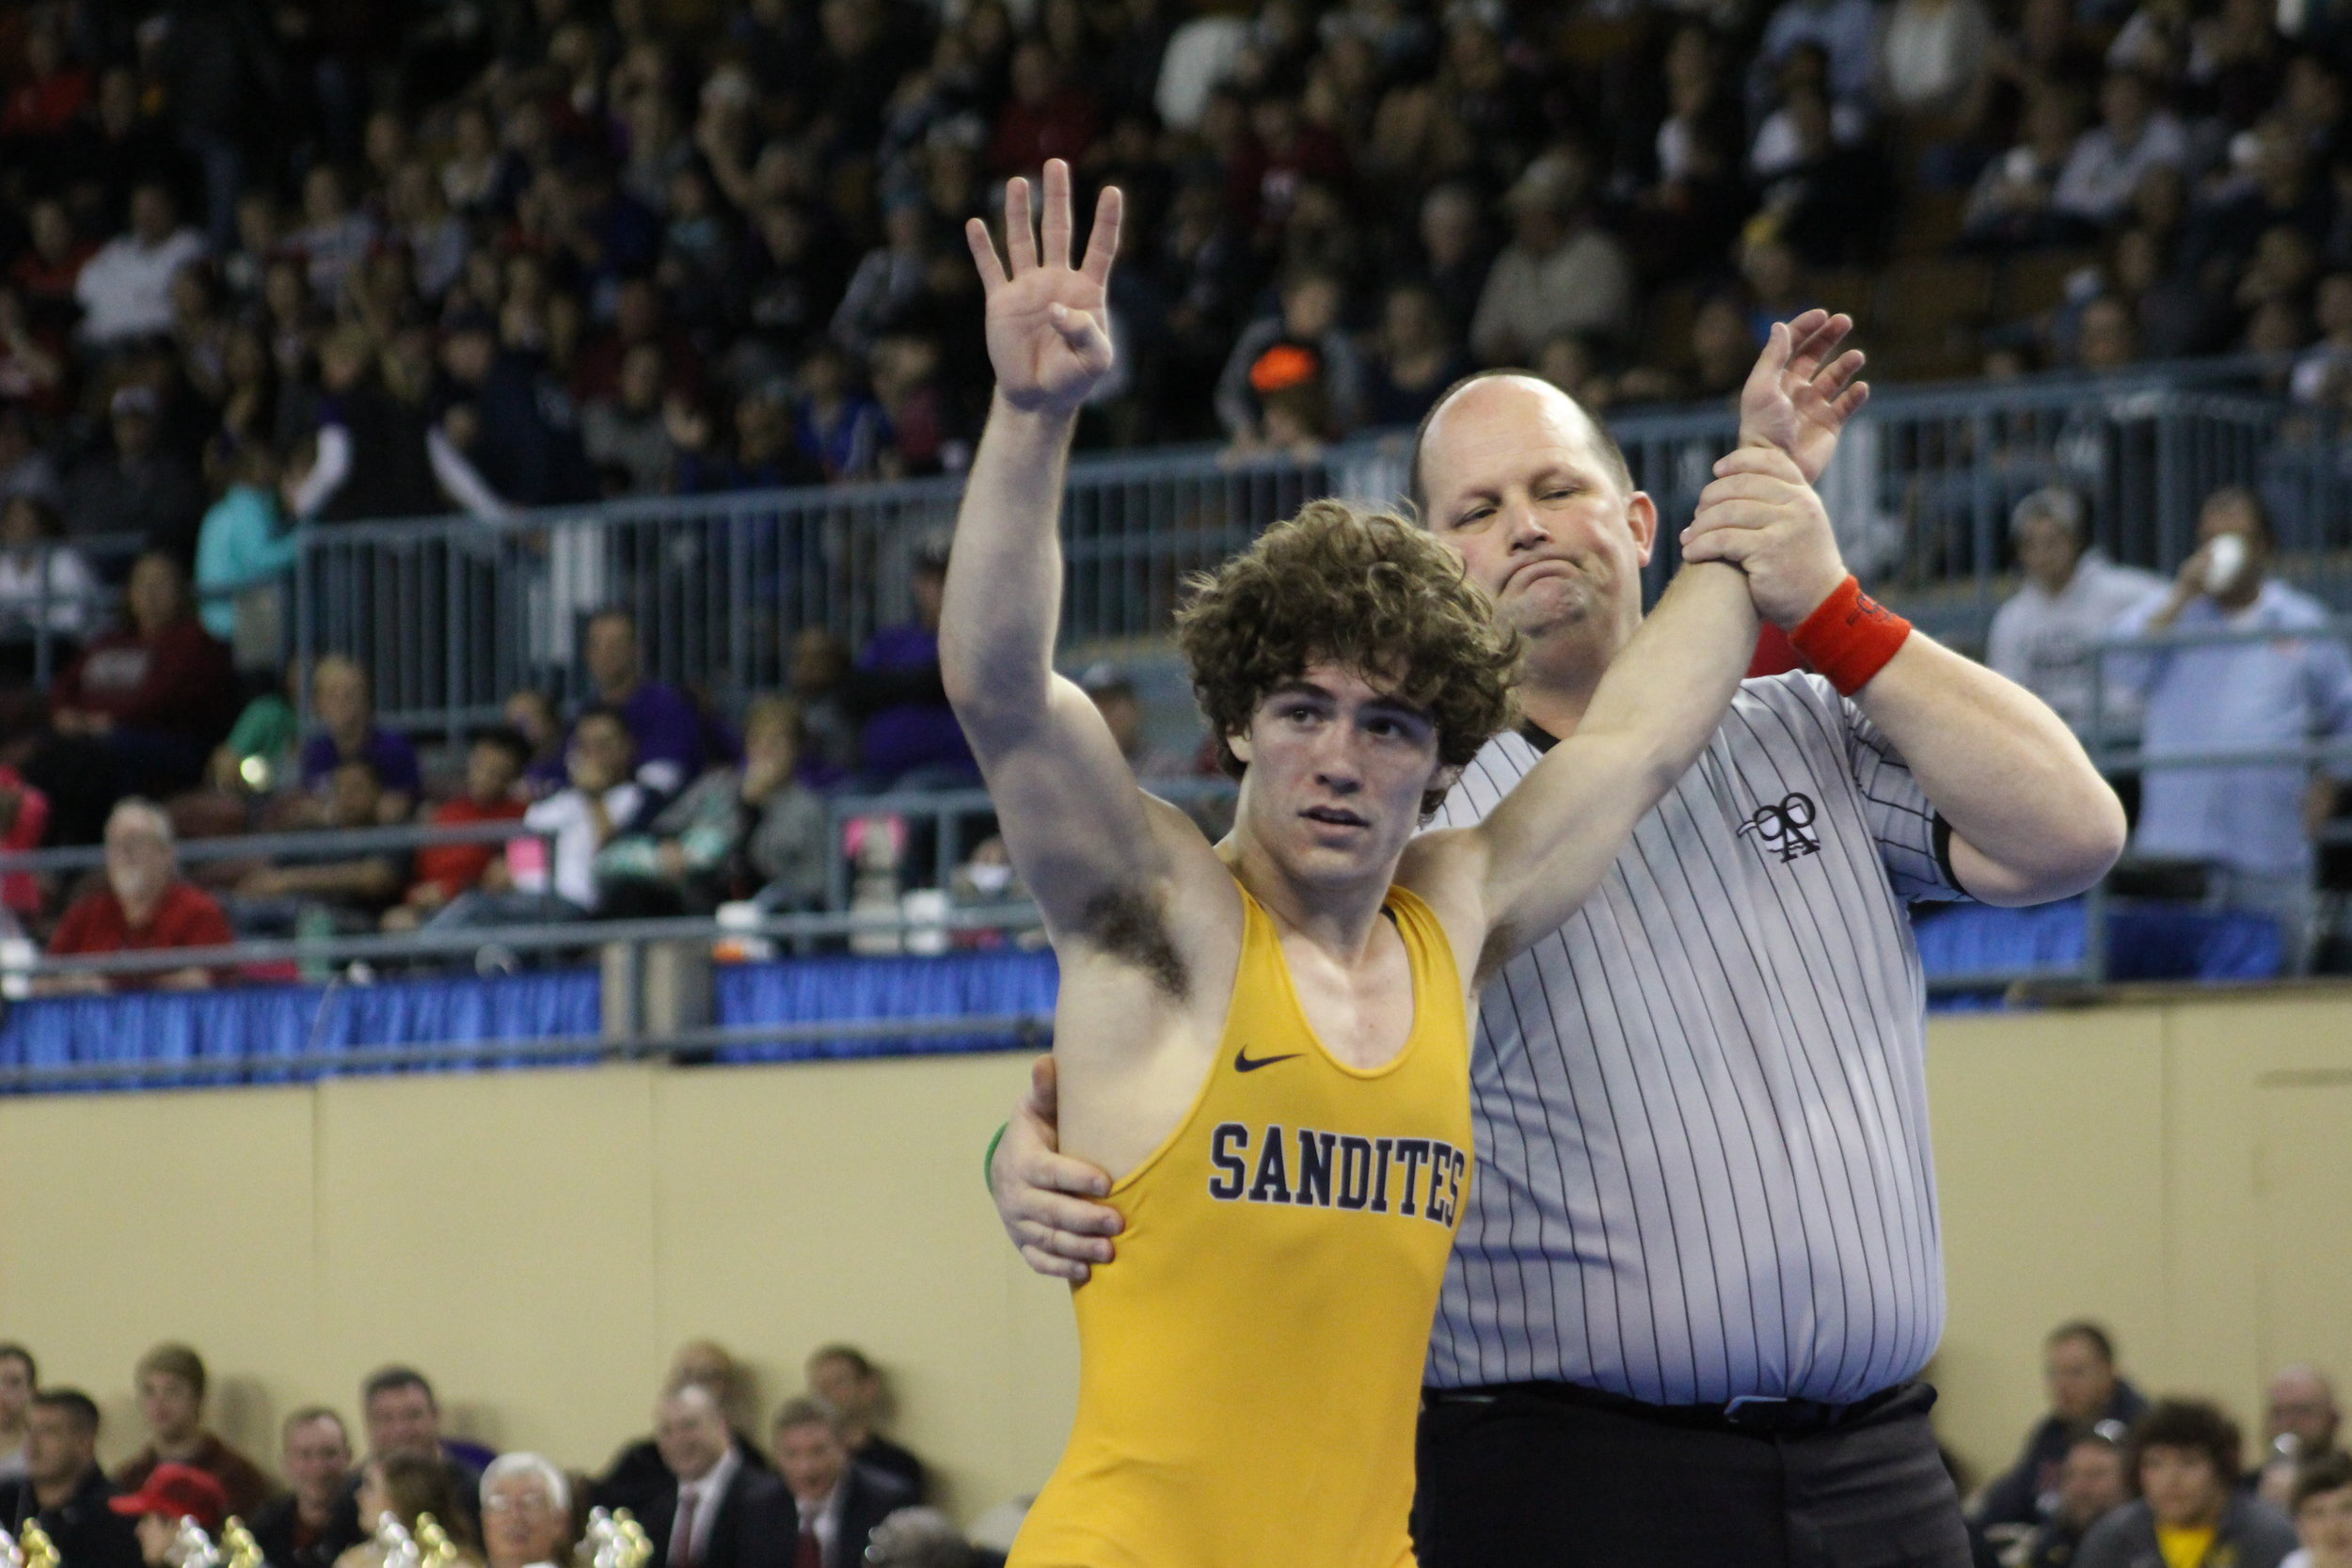 Four-time undefeated State Champion Daton Fix hasn't lost a match in the U.S. since October of 2015.